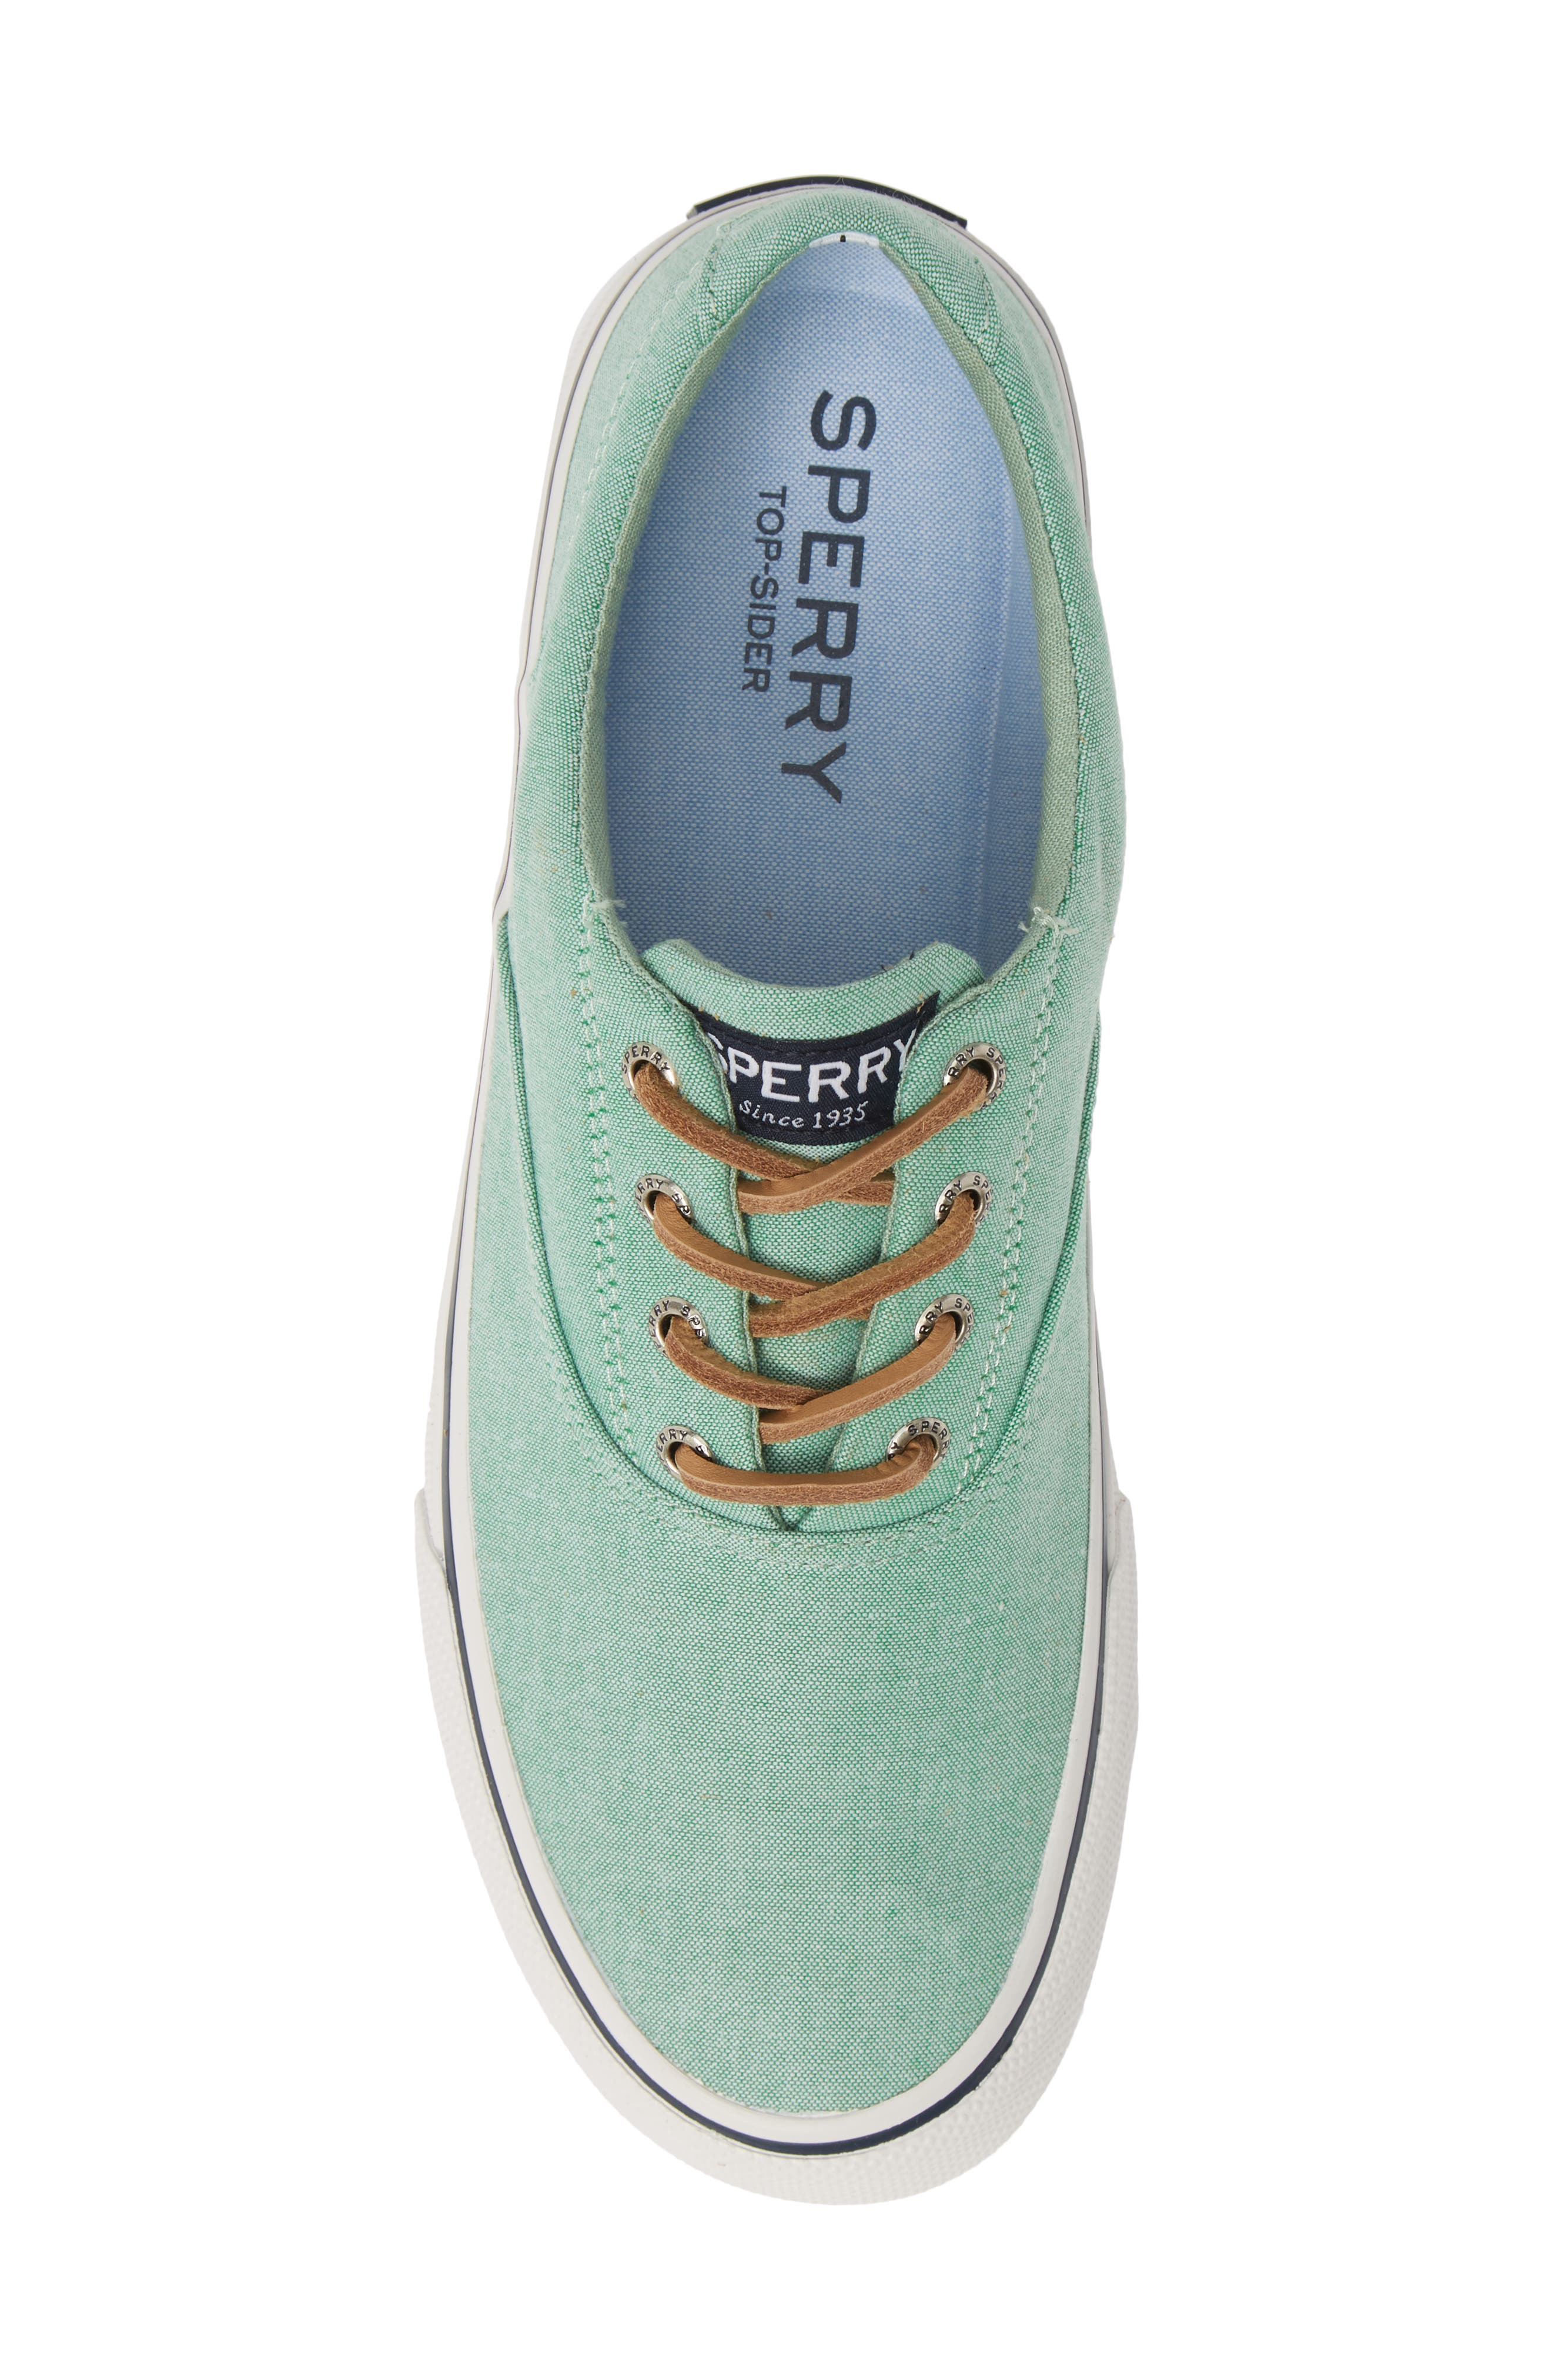 SPERRY, Striper II CVO Oxford Sneaker, Alternate thumbnail 5, color, GREEN